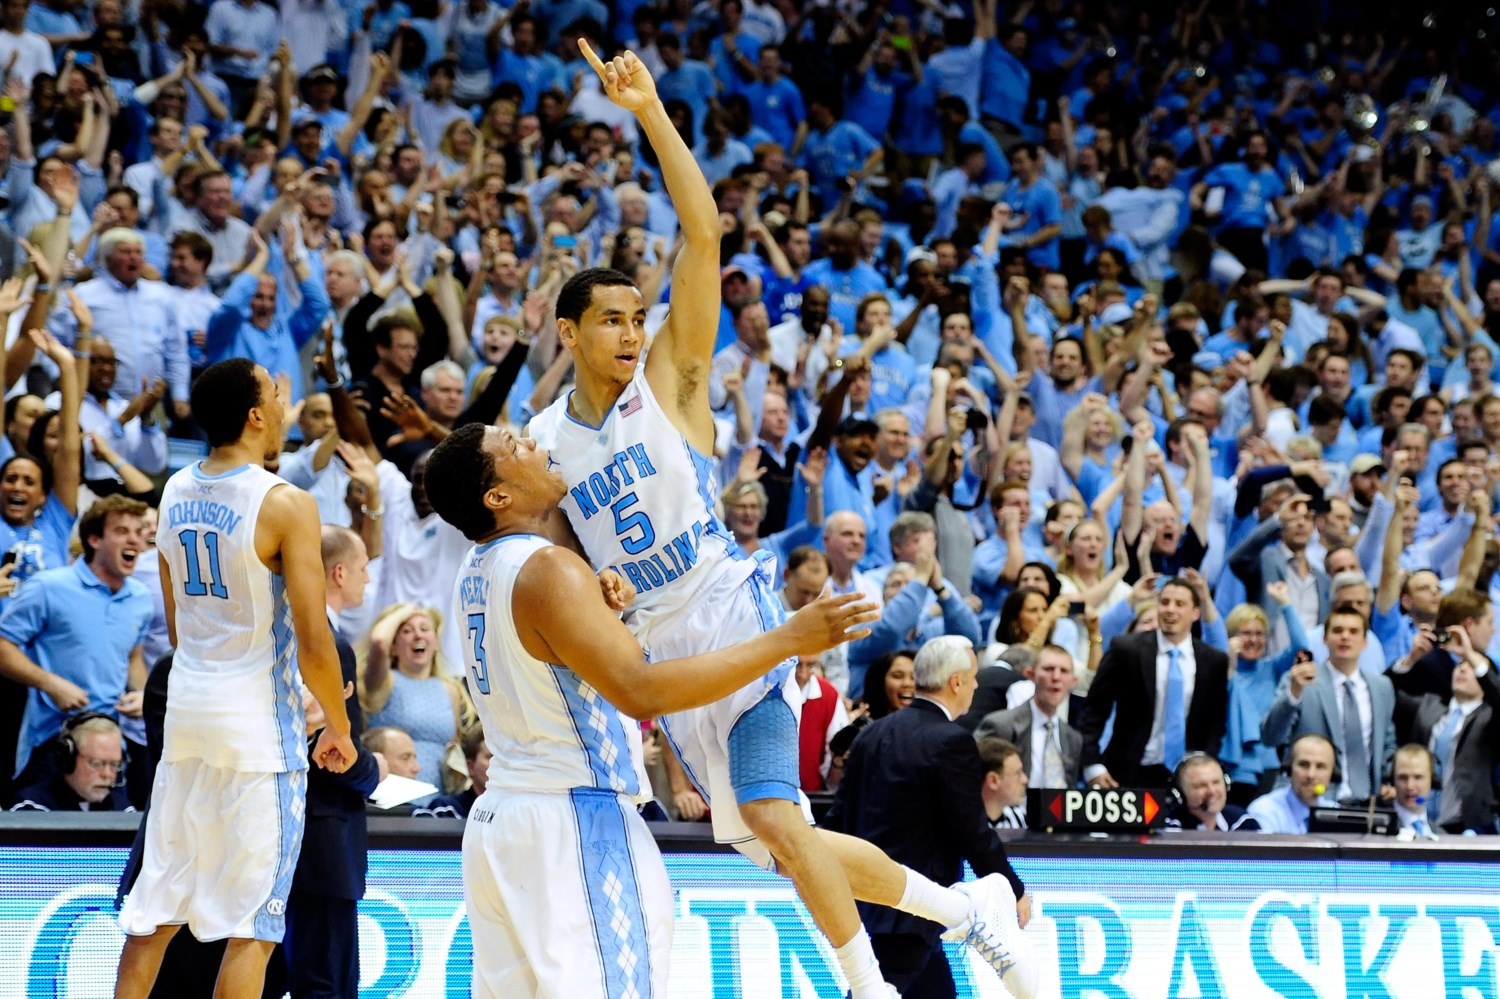 North Carolina 74, #5 Duke 66